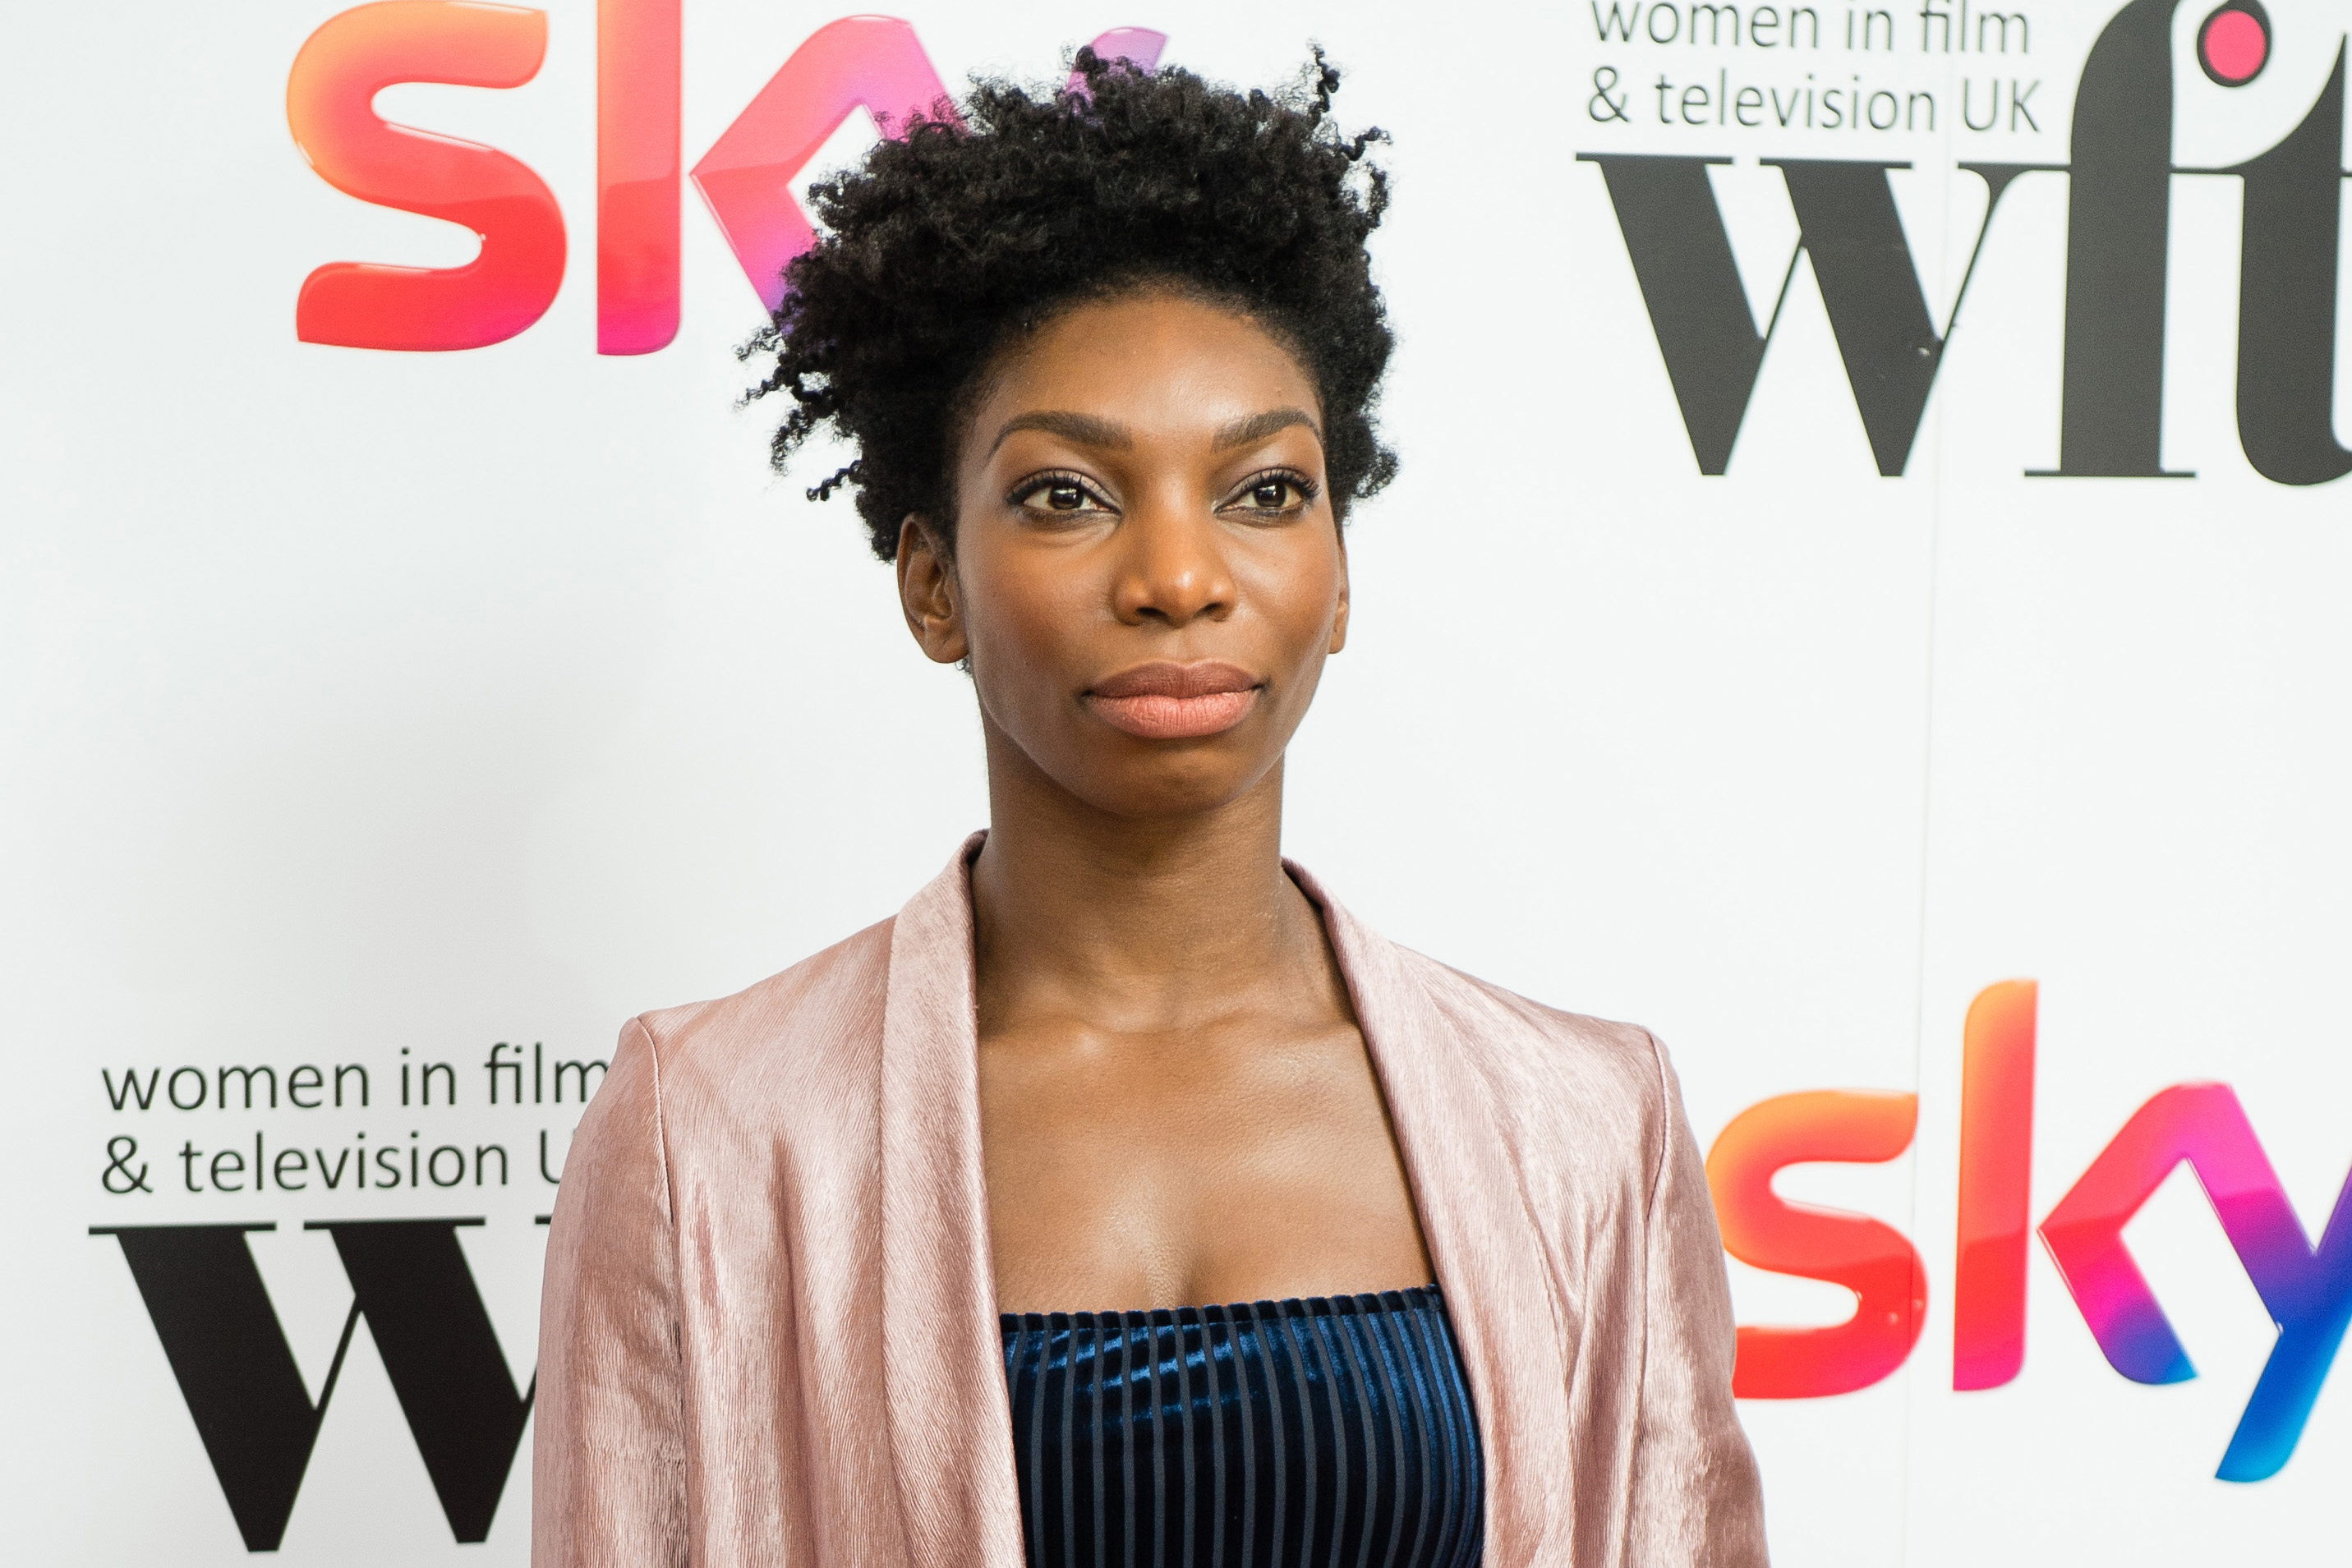 Michaela Coel attends the Sky Women In Film & TV Awards at London Hilton on December 2, 2016 in London, England.